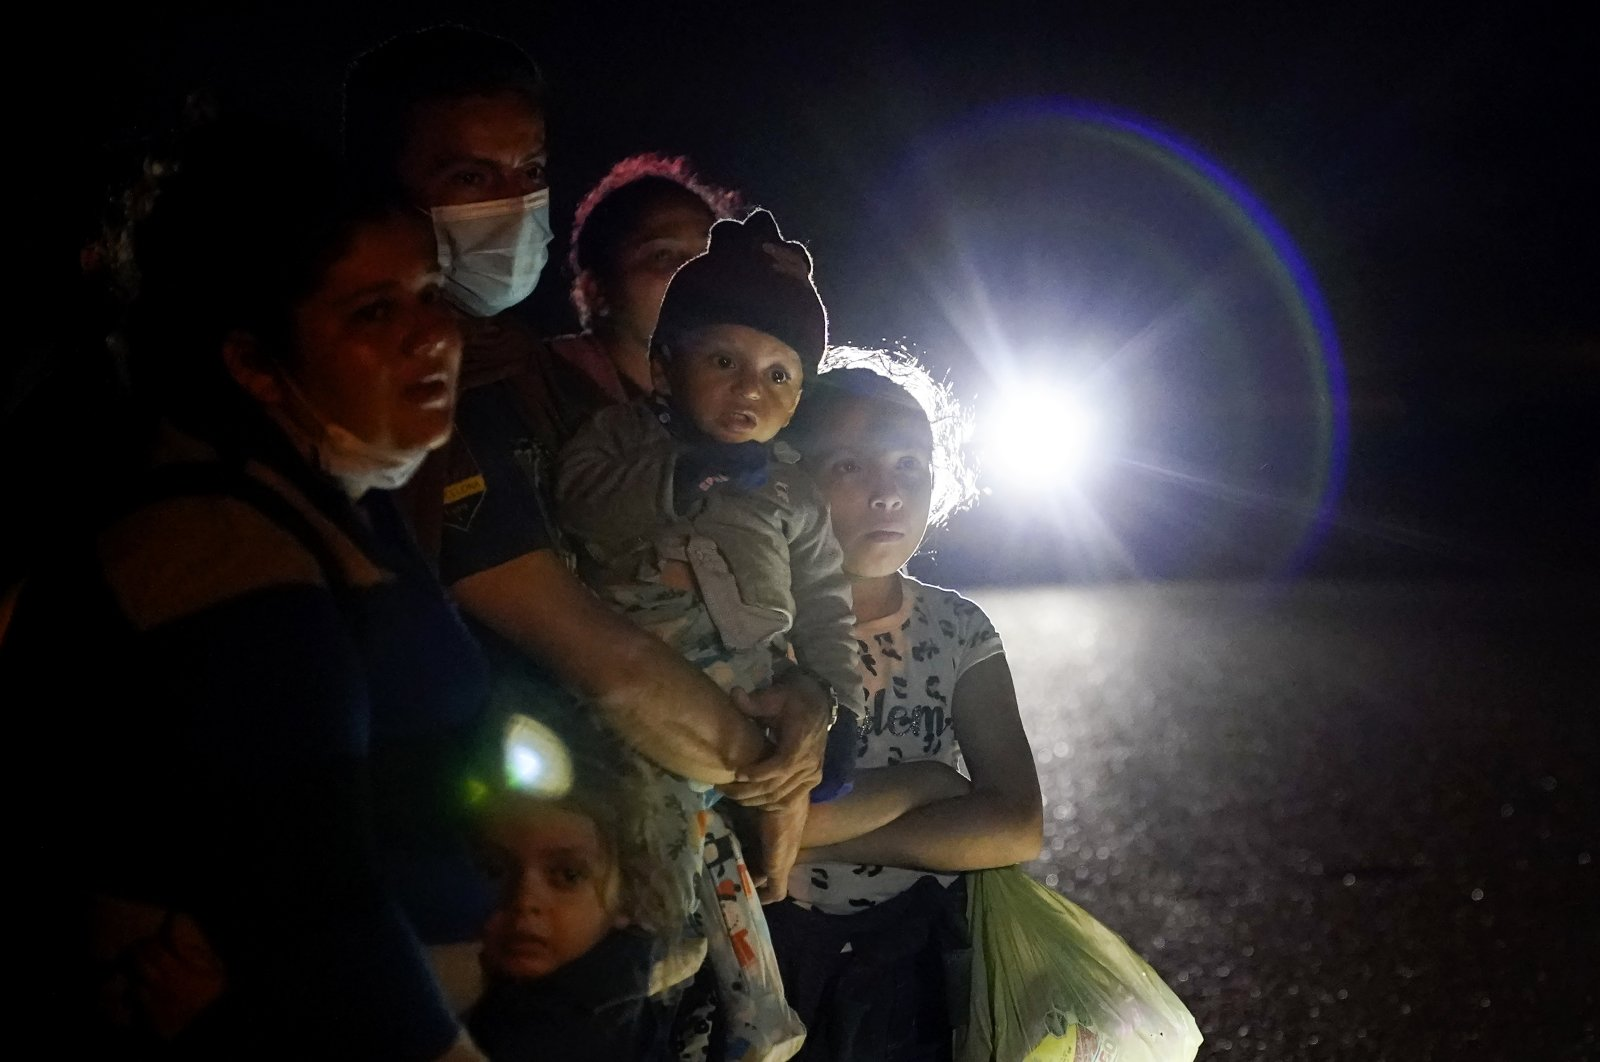 A group of migrants mainly from Honduras and Nicaragua wait along a road after turning themselves in upon crossing the U.S.-Mexico border, in La Joya, Texas, U.S., May 17, 2021. (AP Photo)